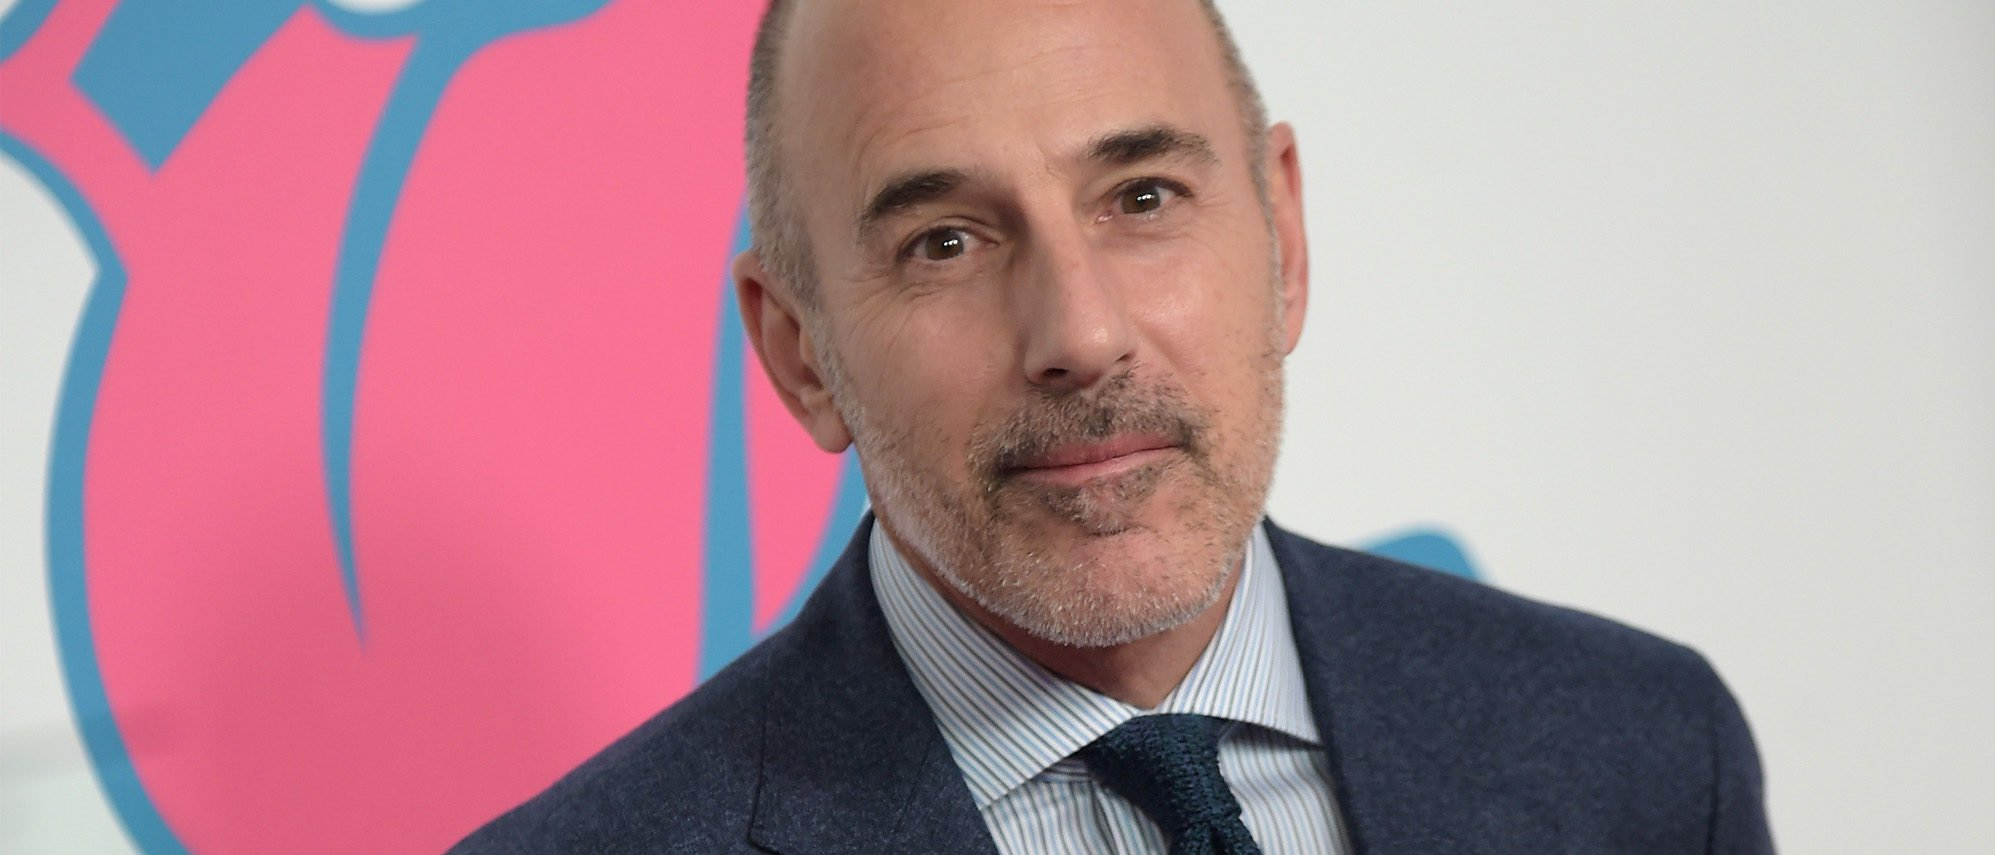 Former Production Assistant Claims Lauer 'Went After The Most Vulnerable' Women At NBC https://t.co/5PFBQoCNW8 https://t.co/TsAUAlRnyF